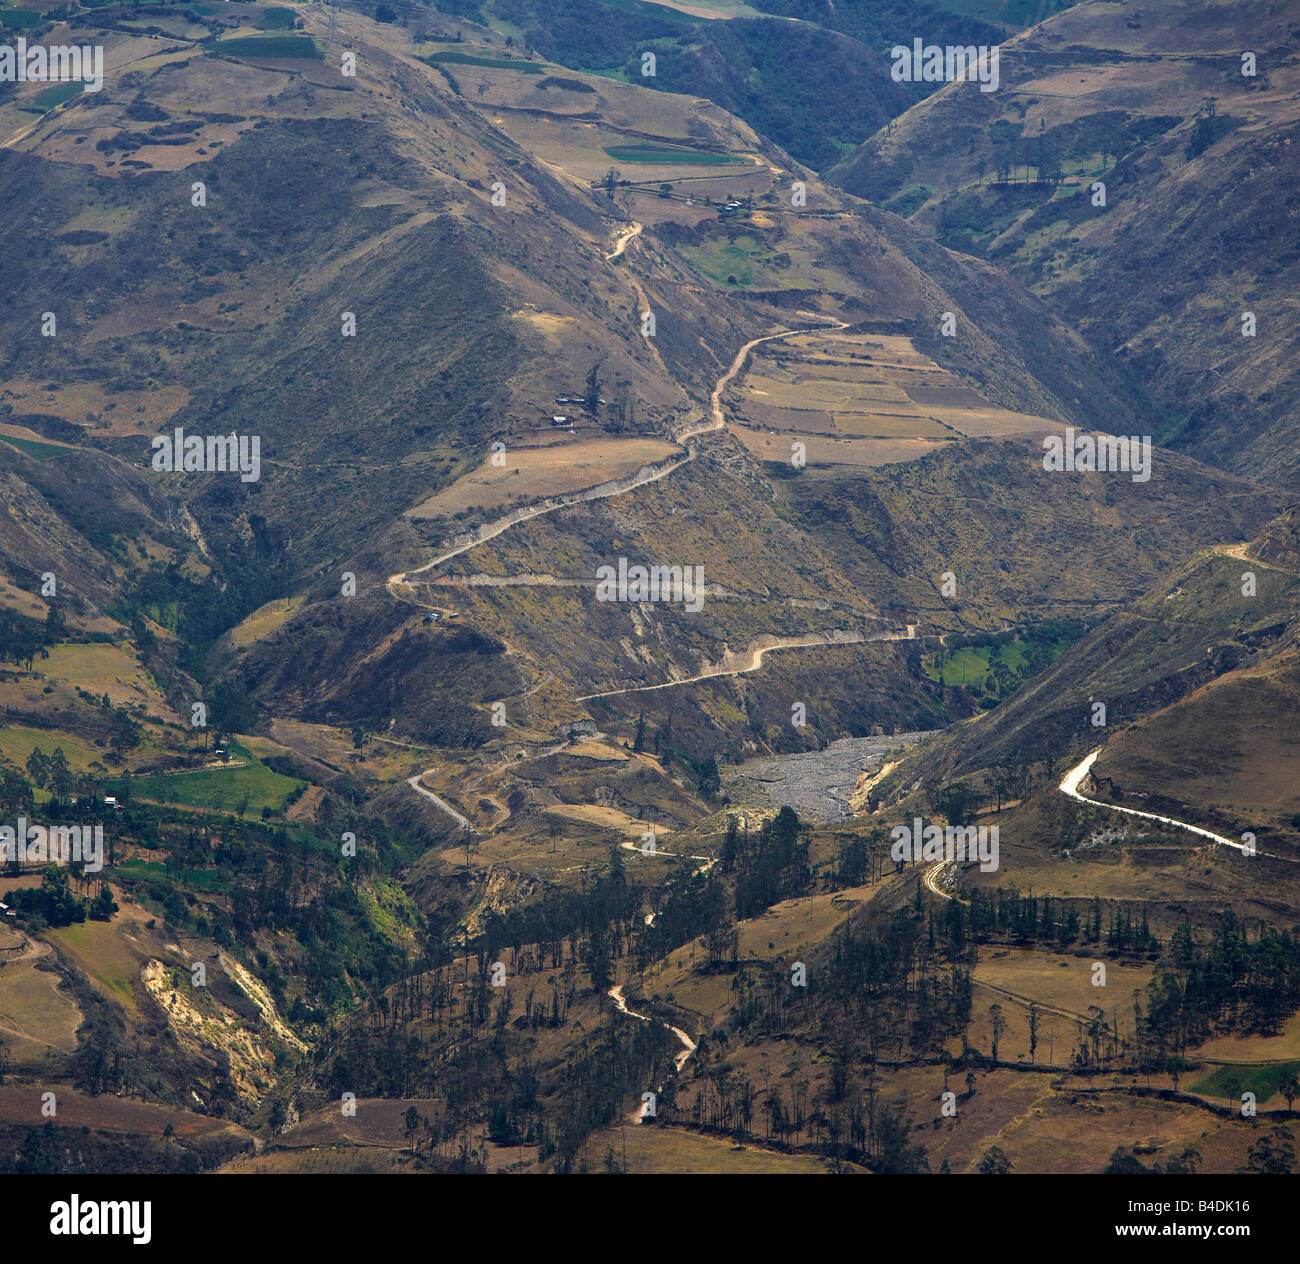 Roads and fields in small village, Alausi, in Andes Mountains, Ecuador - Stock Image